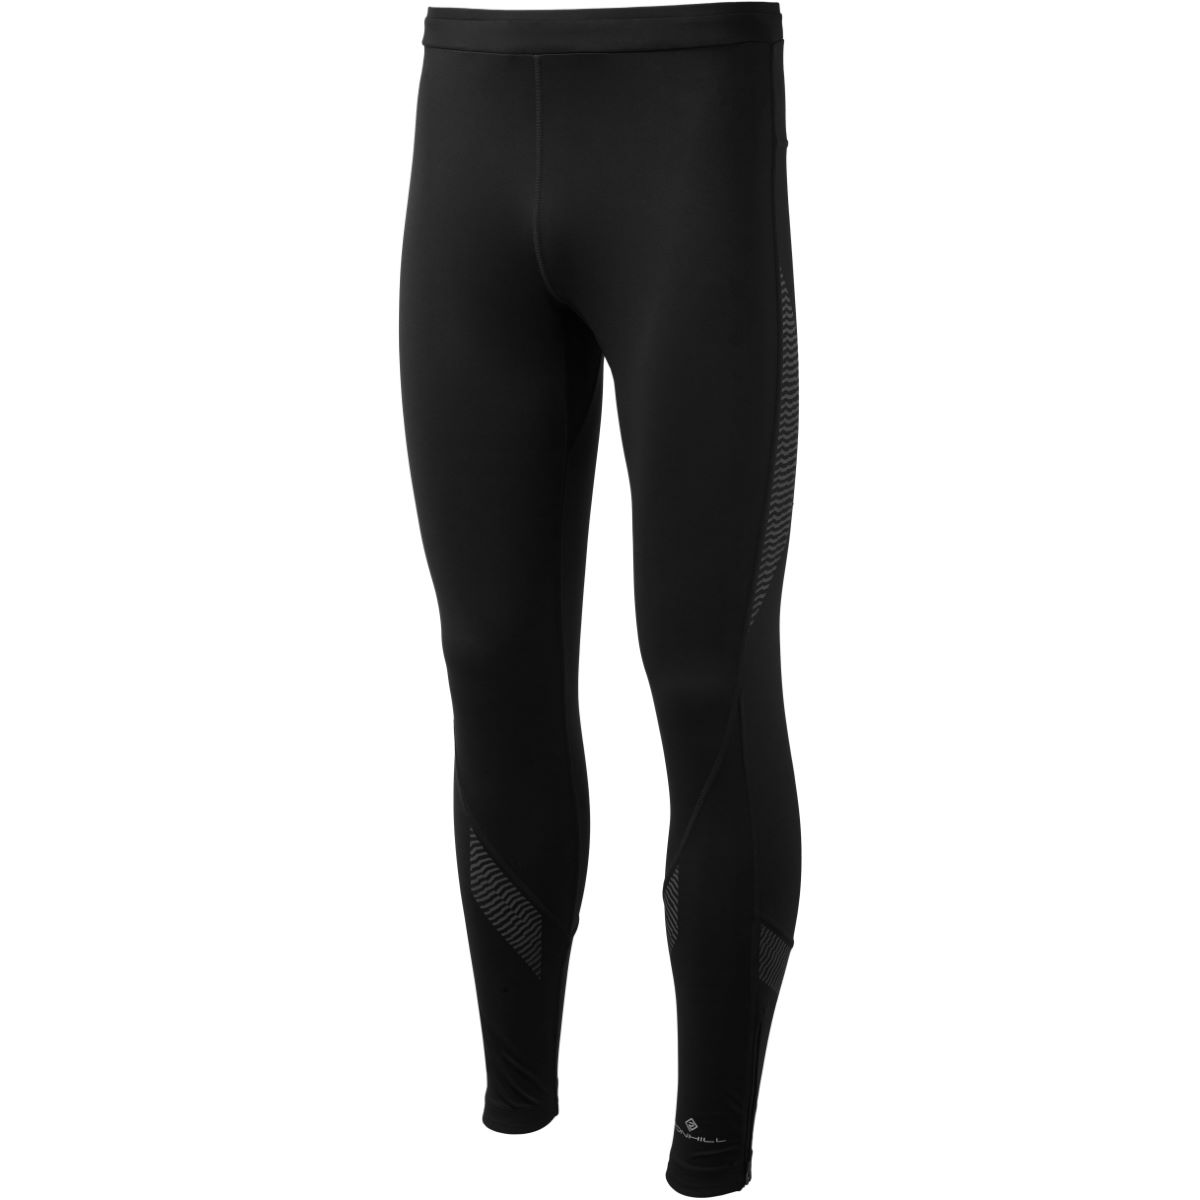 Ronhill Ronhill Infinity Nightfall Tight   Tights